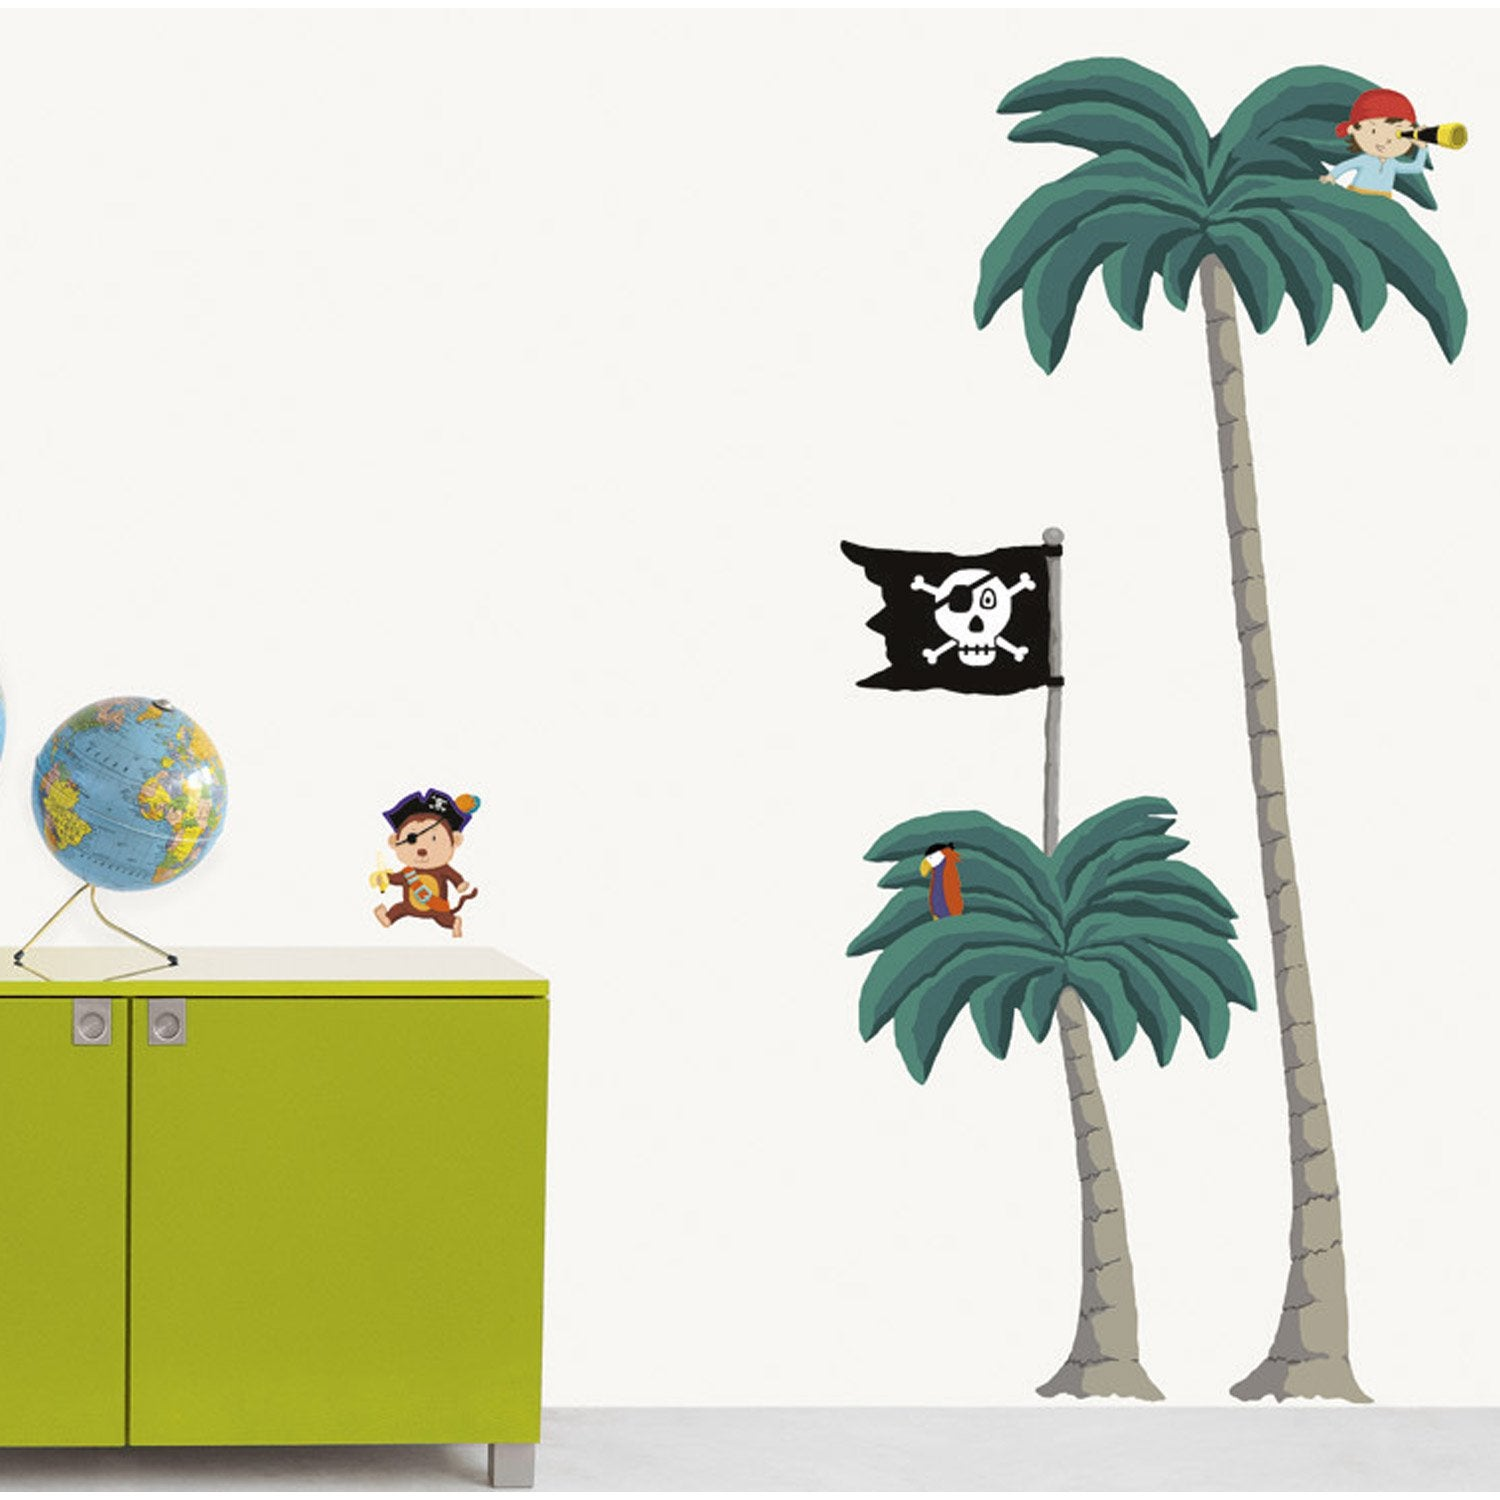 sticker palmiers pirates 49 x 69 cm leroy merlin. Black Bedroom Furniture Sets. Home Design Ideas